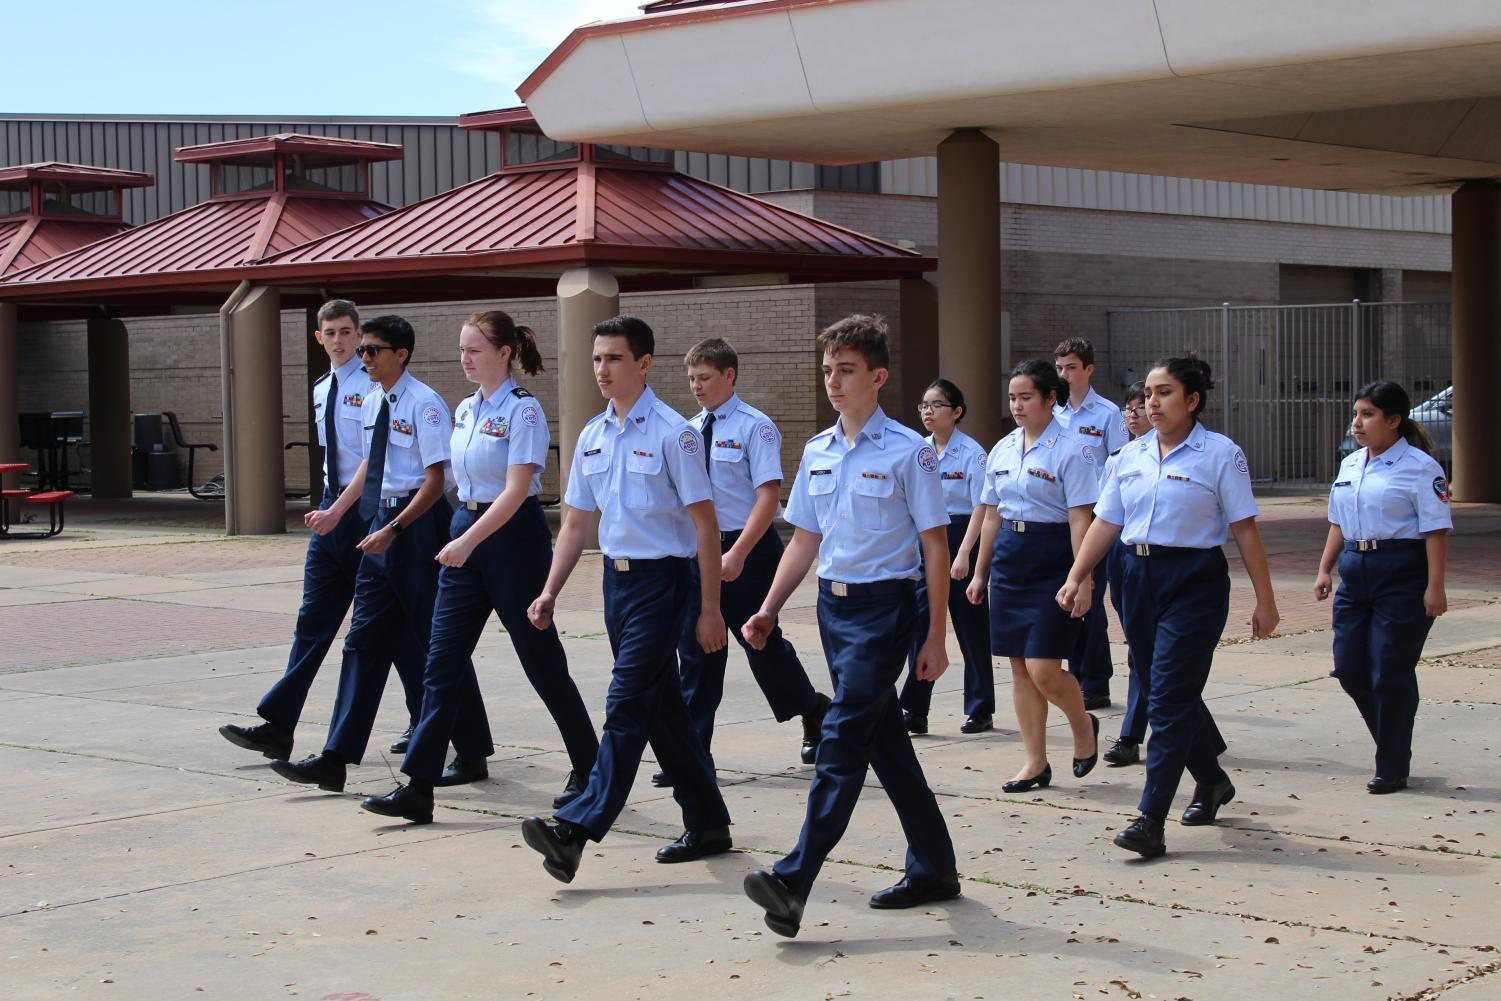 Within the JROTC class, students are taught leadership and military skills for half of each class on Mondays through Thursdays. On Fridays, JROTC practices outside.